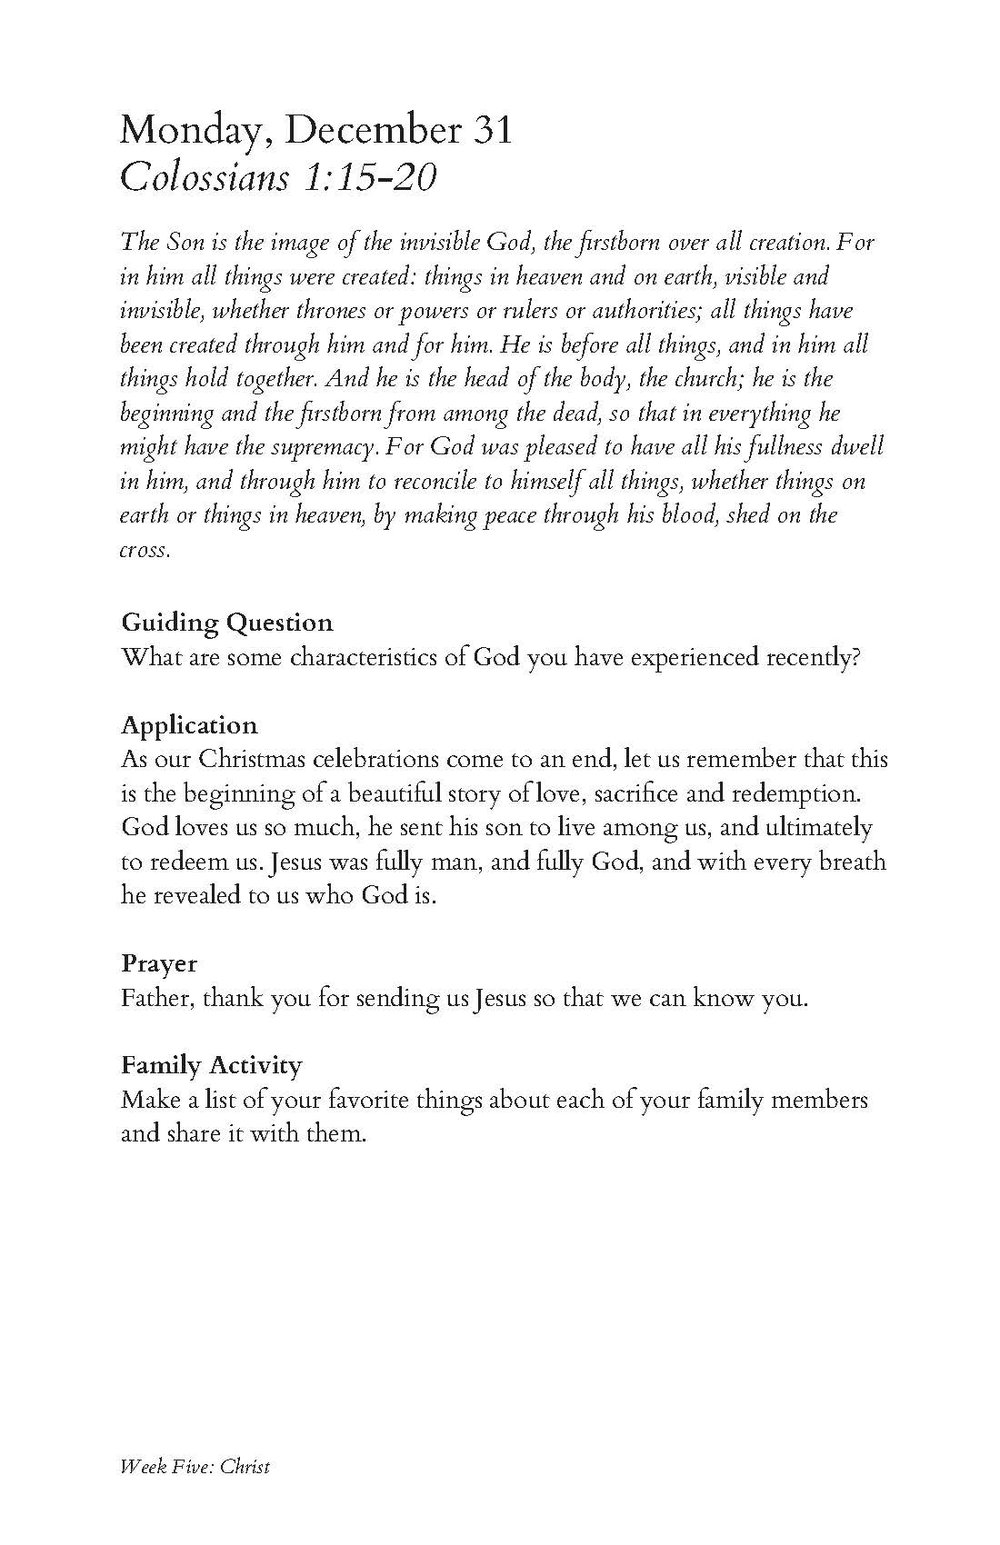 Final Advent Guide - for digital publication_Page_38.jpg